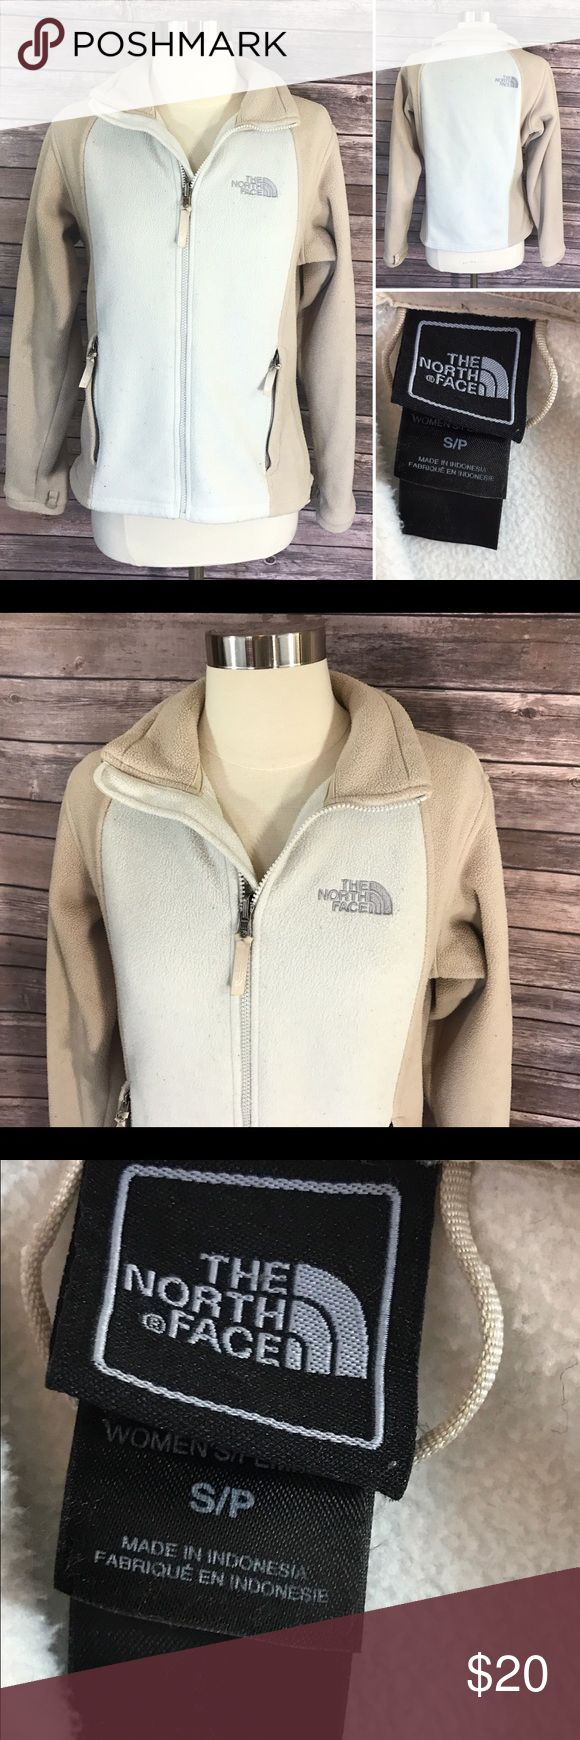 The North Face Fleece Sz S Beige Tan Zip Up Womens Good, gently used condition. Size: small. North Face Jackets & Coats